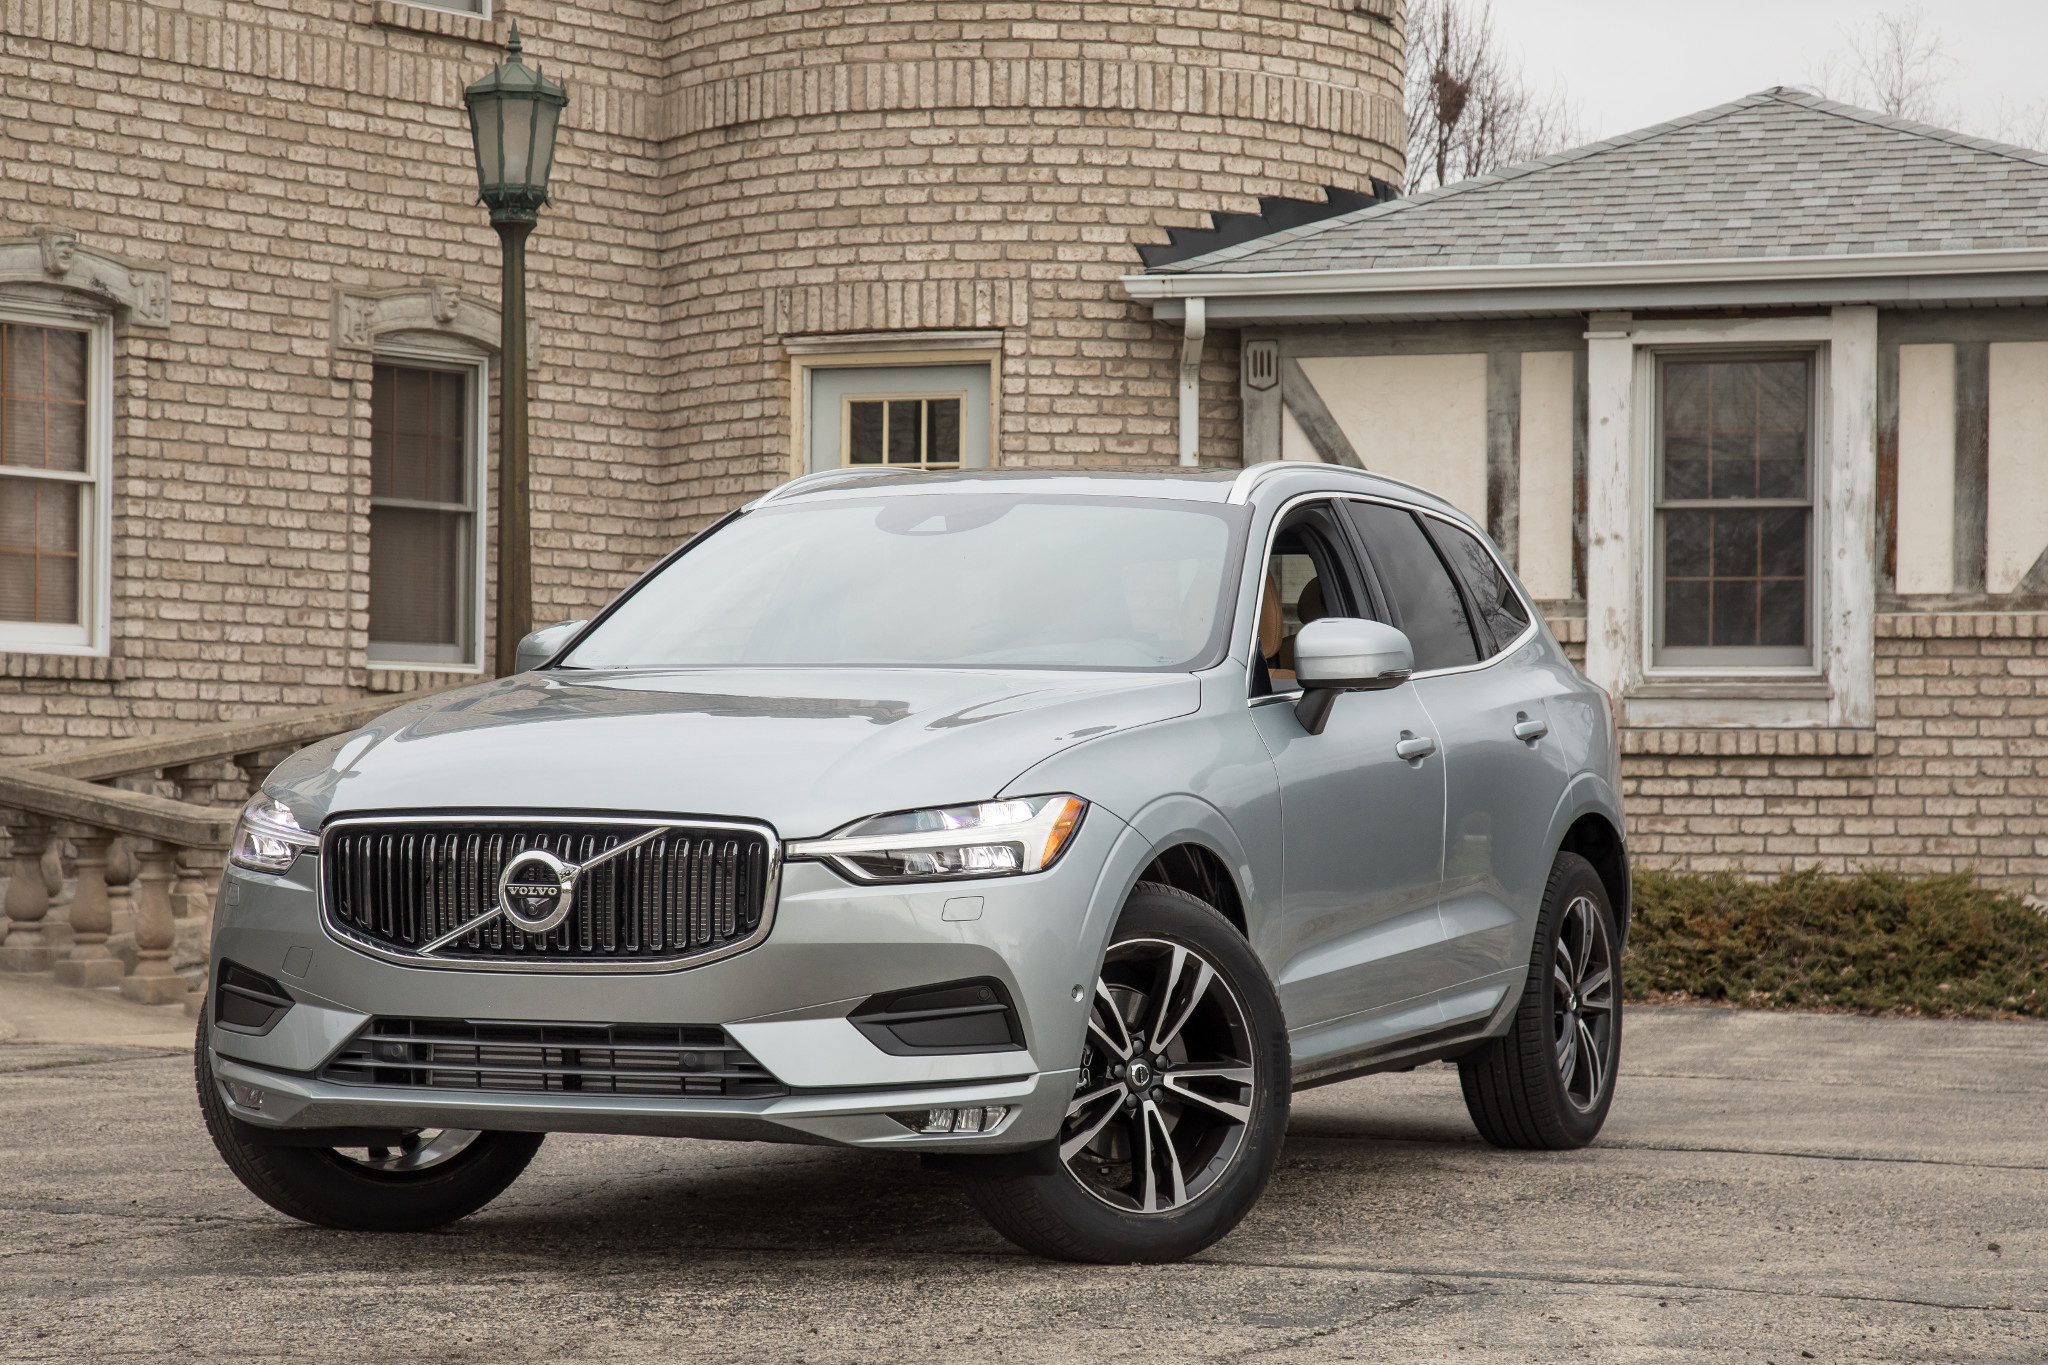 03-volvo-xc60-2018-angle--exterior--front--silver.jpg